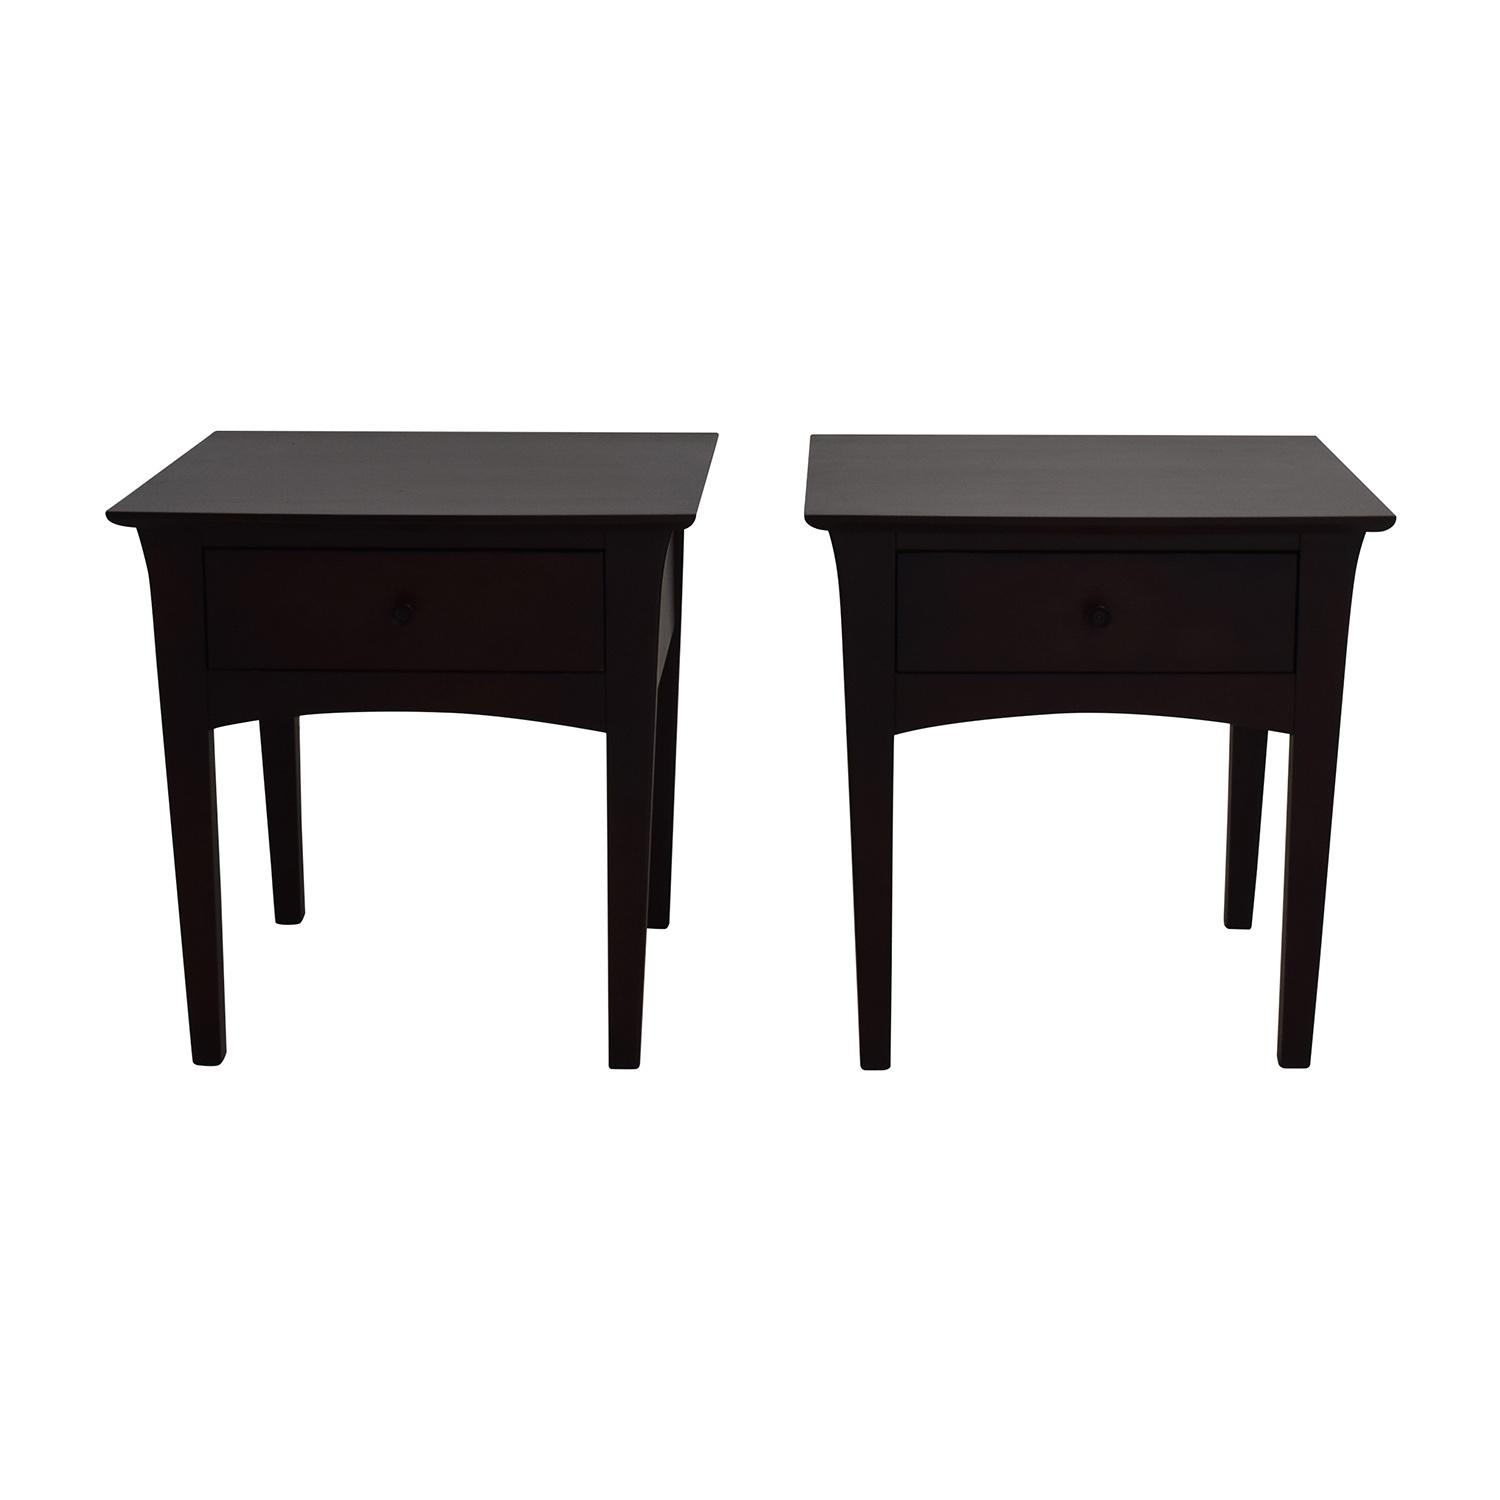 70% Off – Crate And Barrel Crate & Barrel Baronet Nightstands / Tables For Crate And Barrel Sofa Tables (Image 2 of 20)